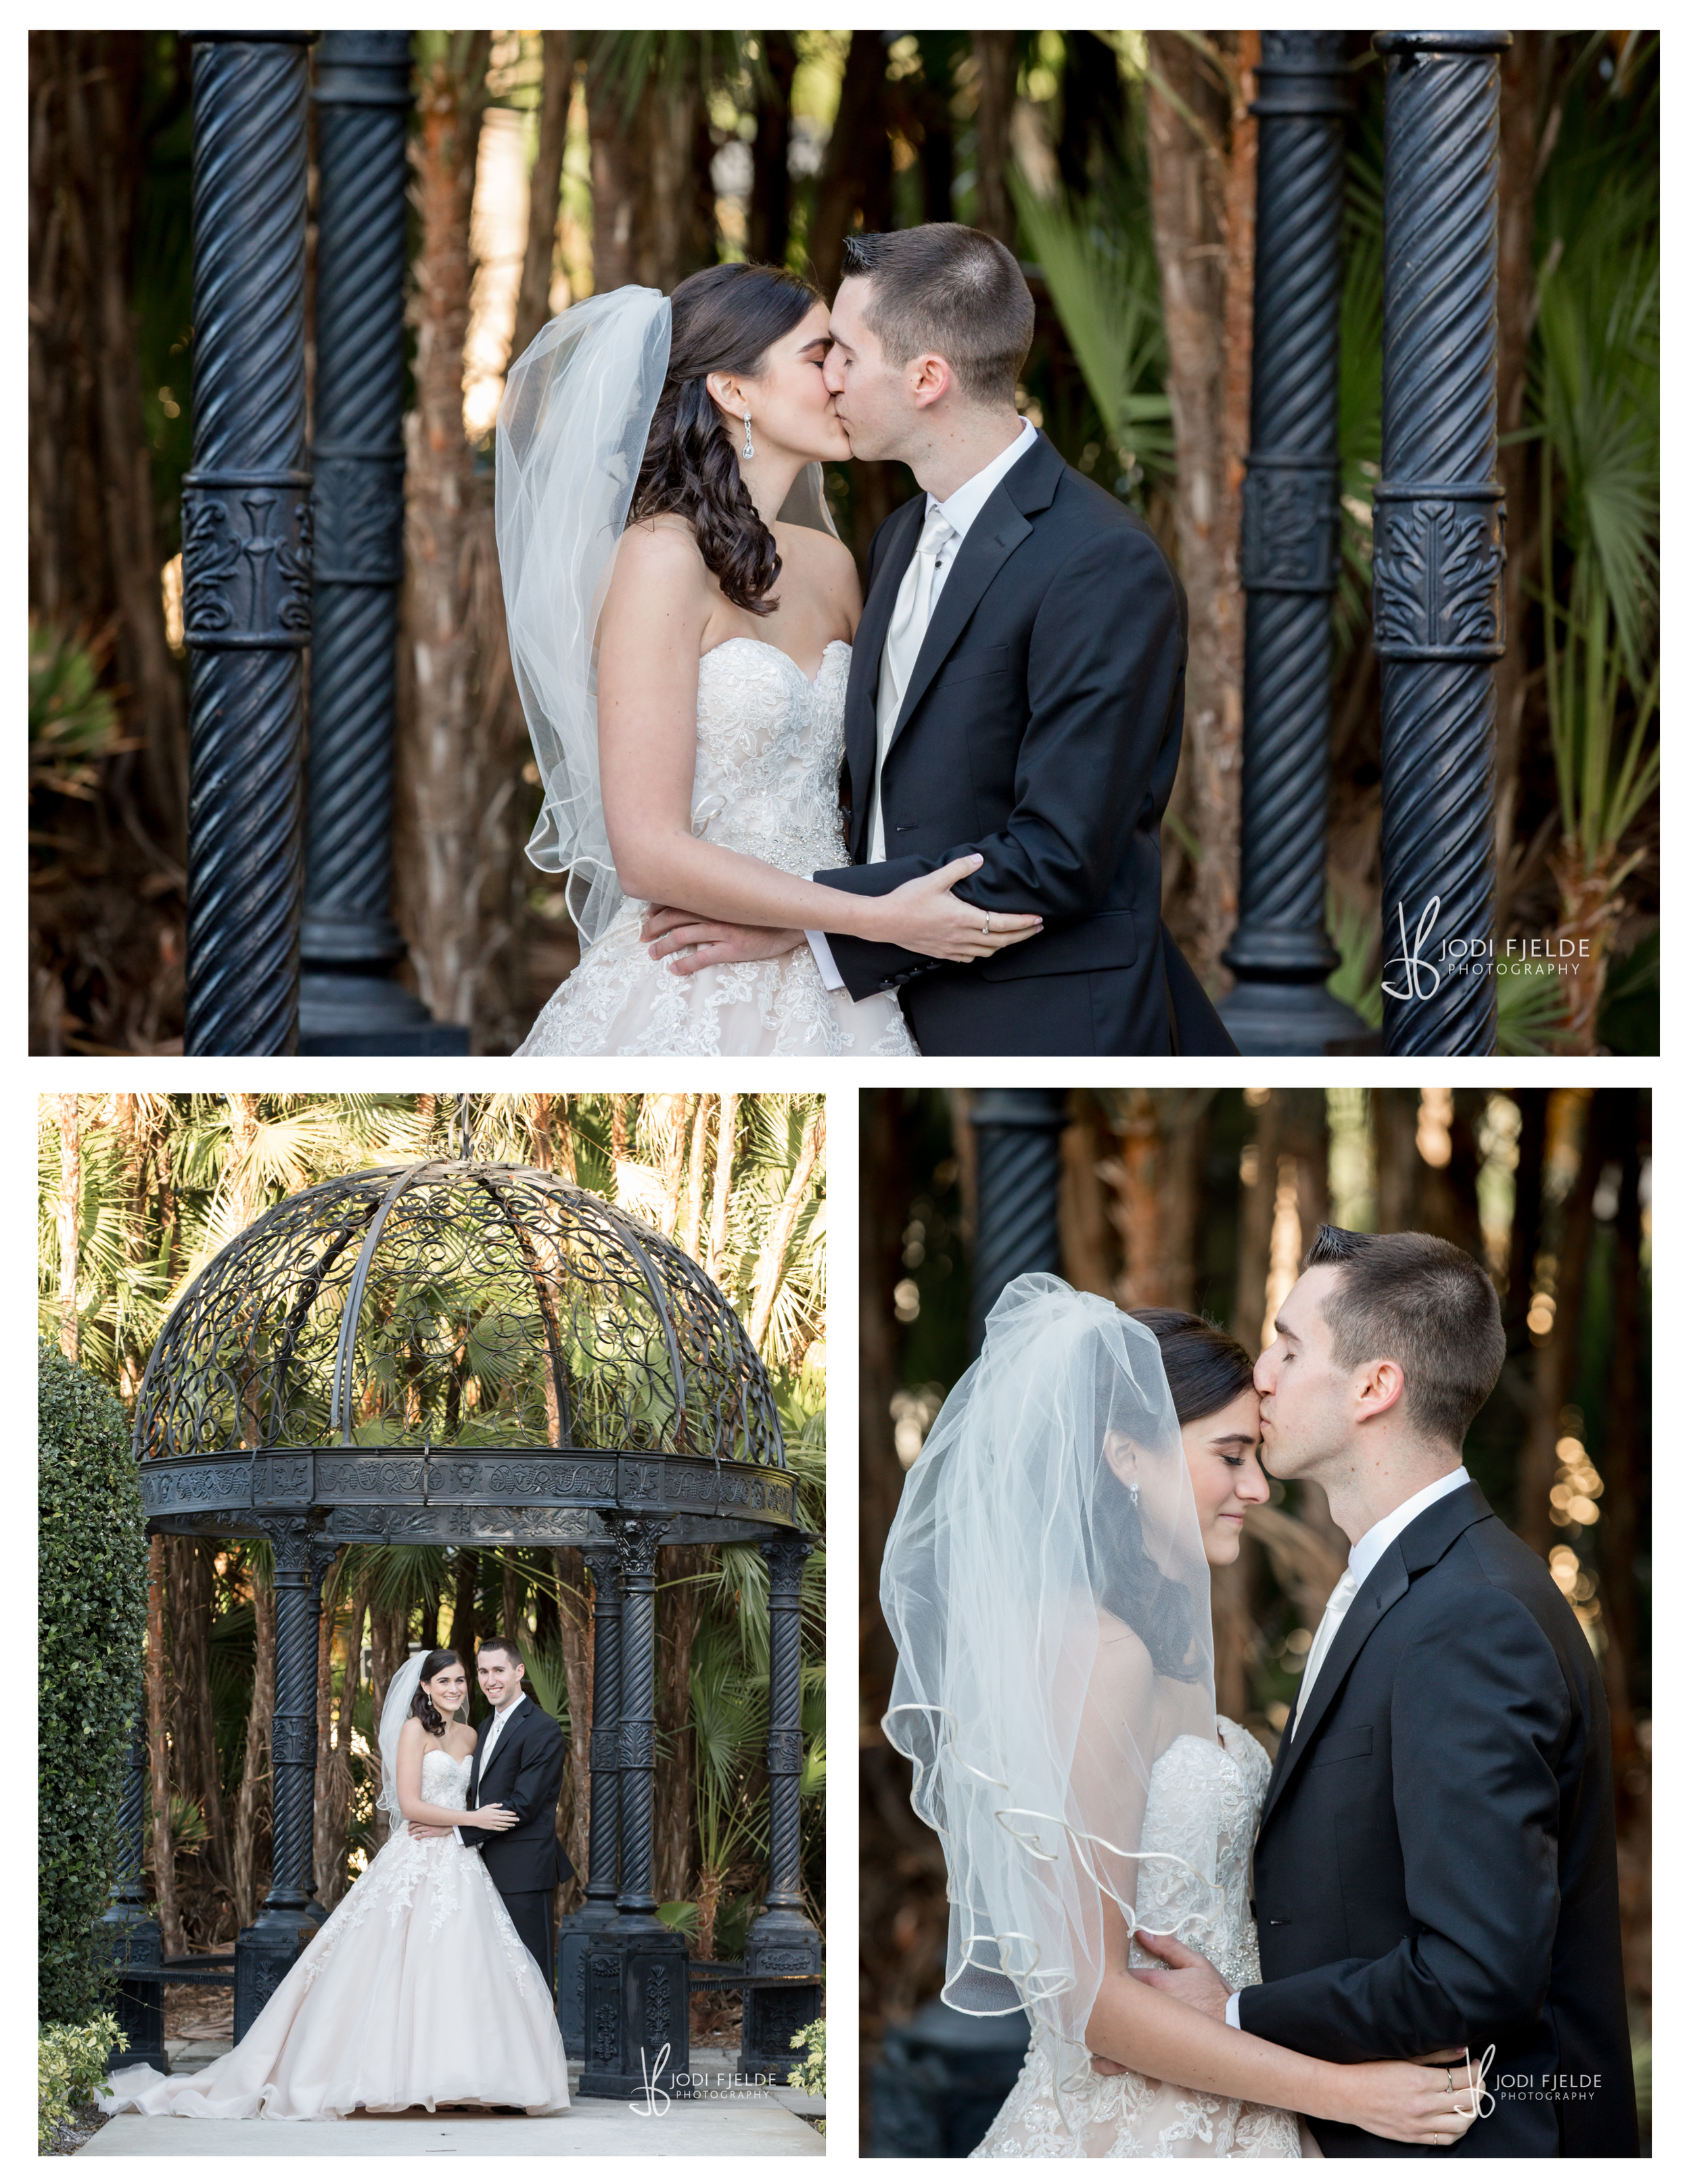 Benvenuto_Palm_Beach_Wedding_Jewish_Michelle & Jason_Jodi_Fjedle_Photography 26.jpg